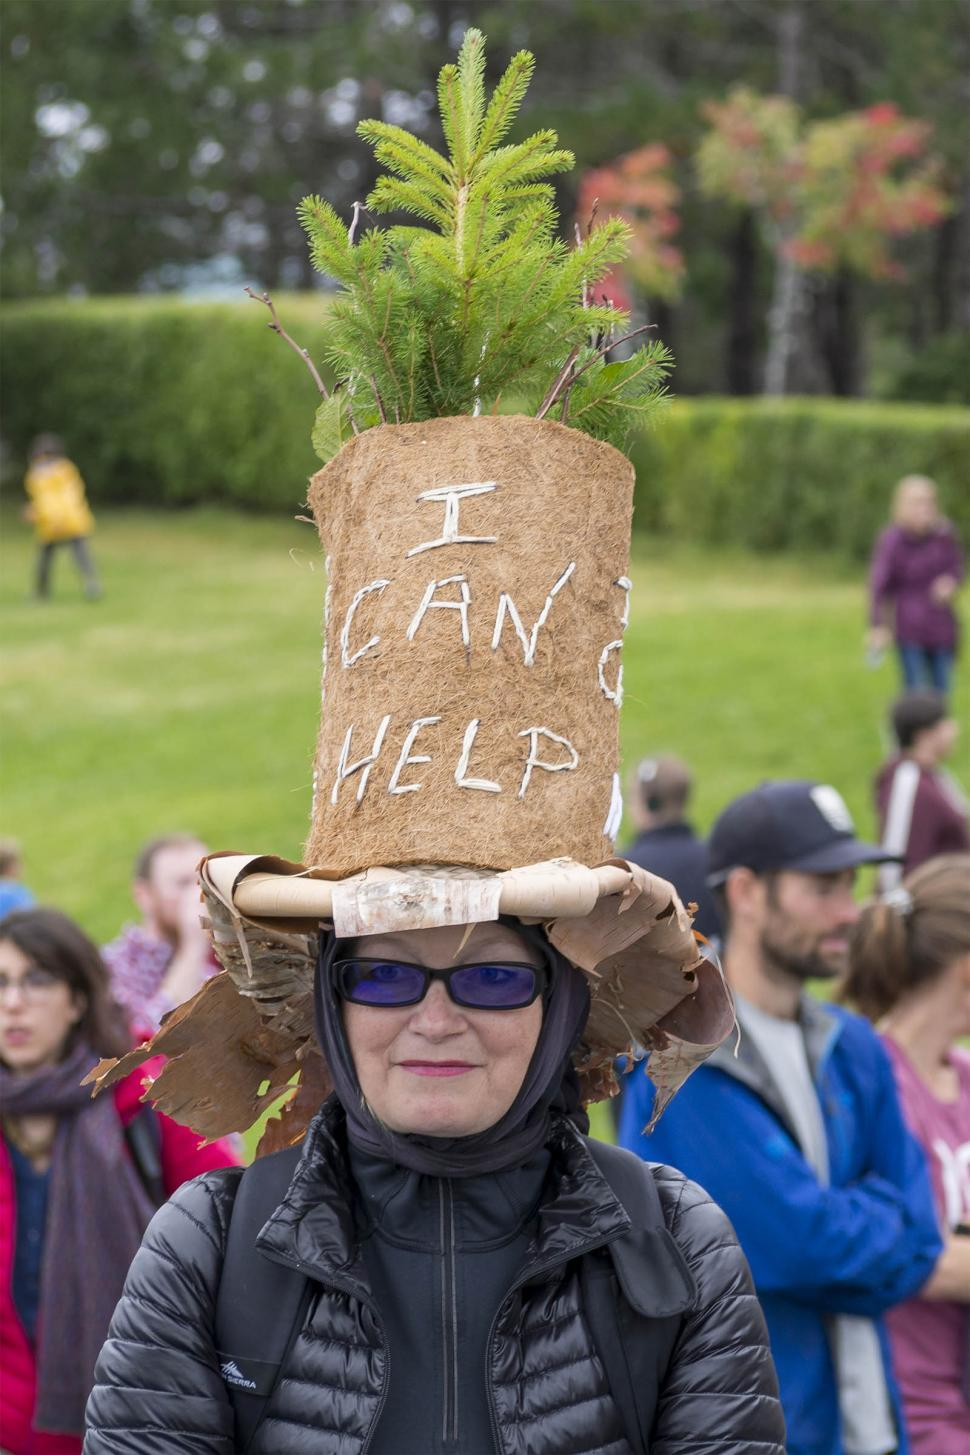 Download Free Stock Photo of Lady in a hat at a climate protest